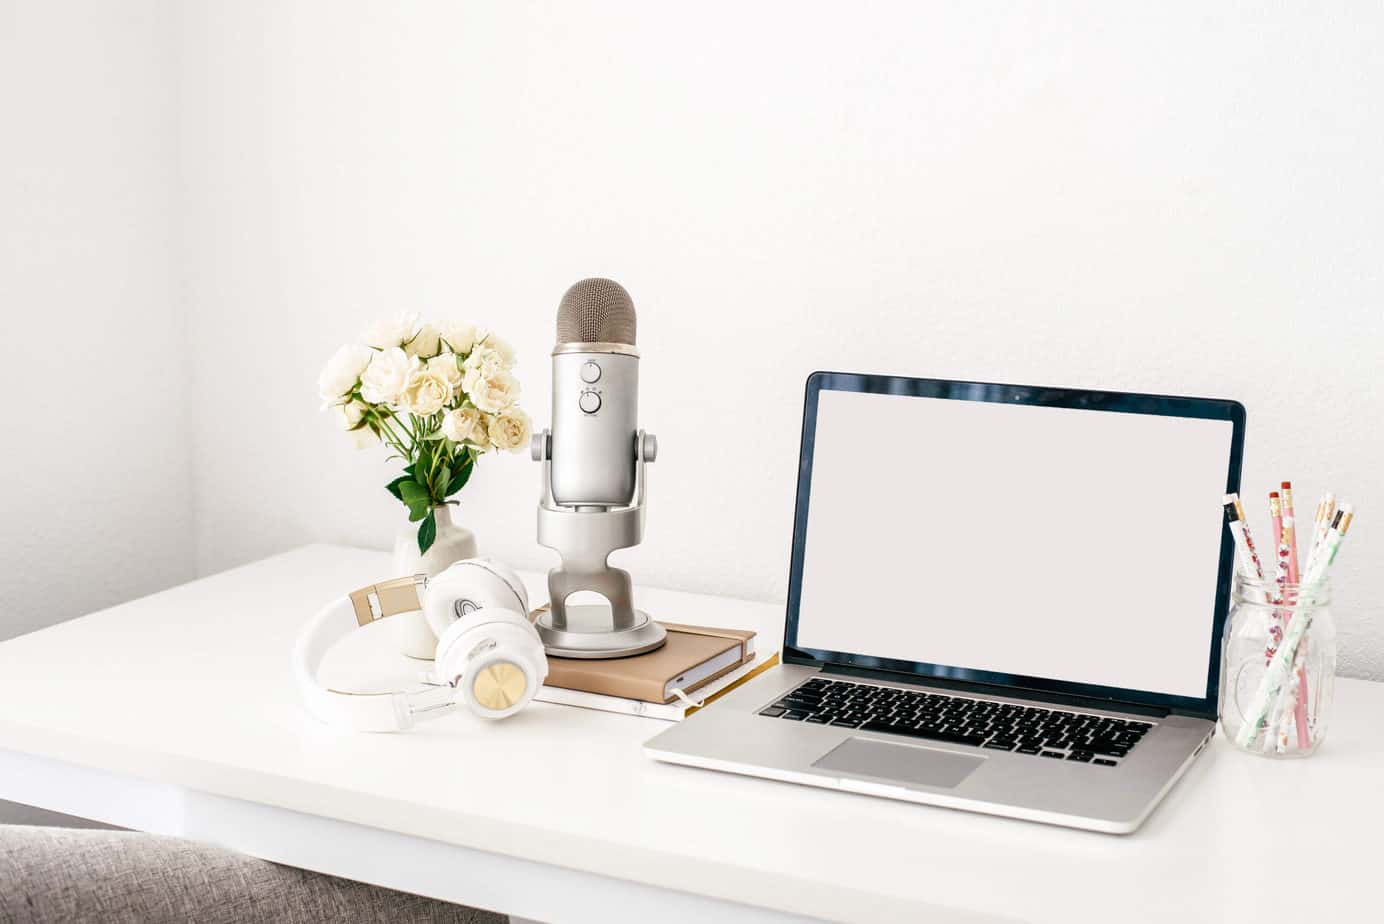 Computer on white desk,flowers in vase, Blog By Number Course Review post